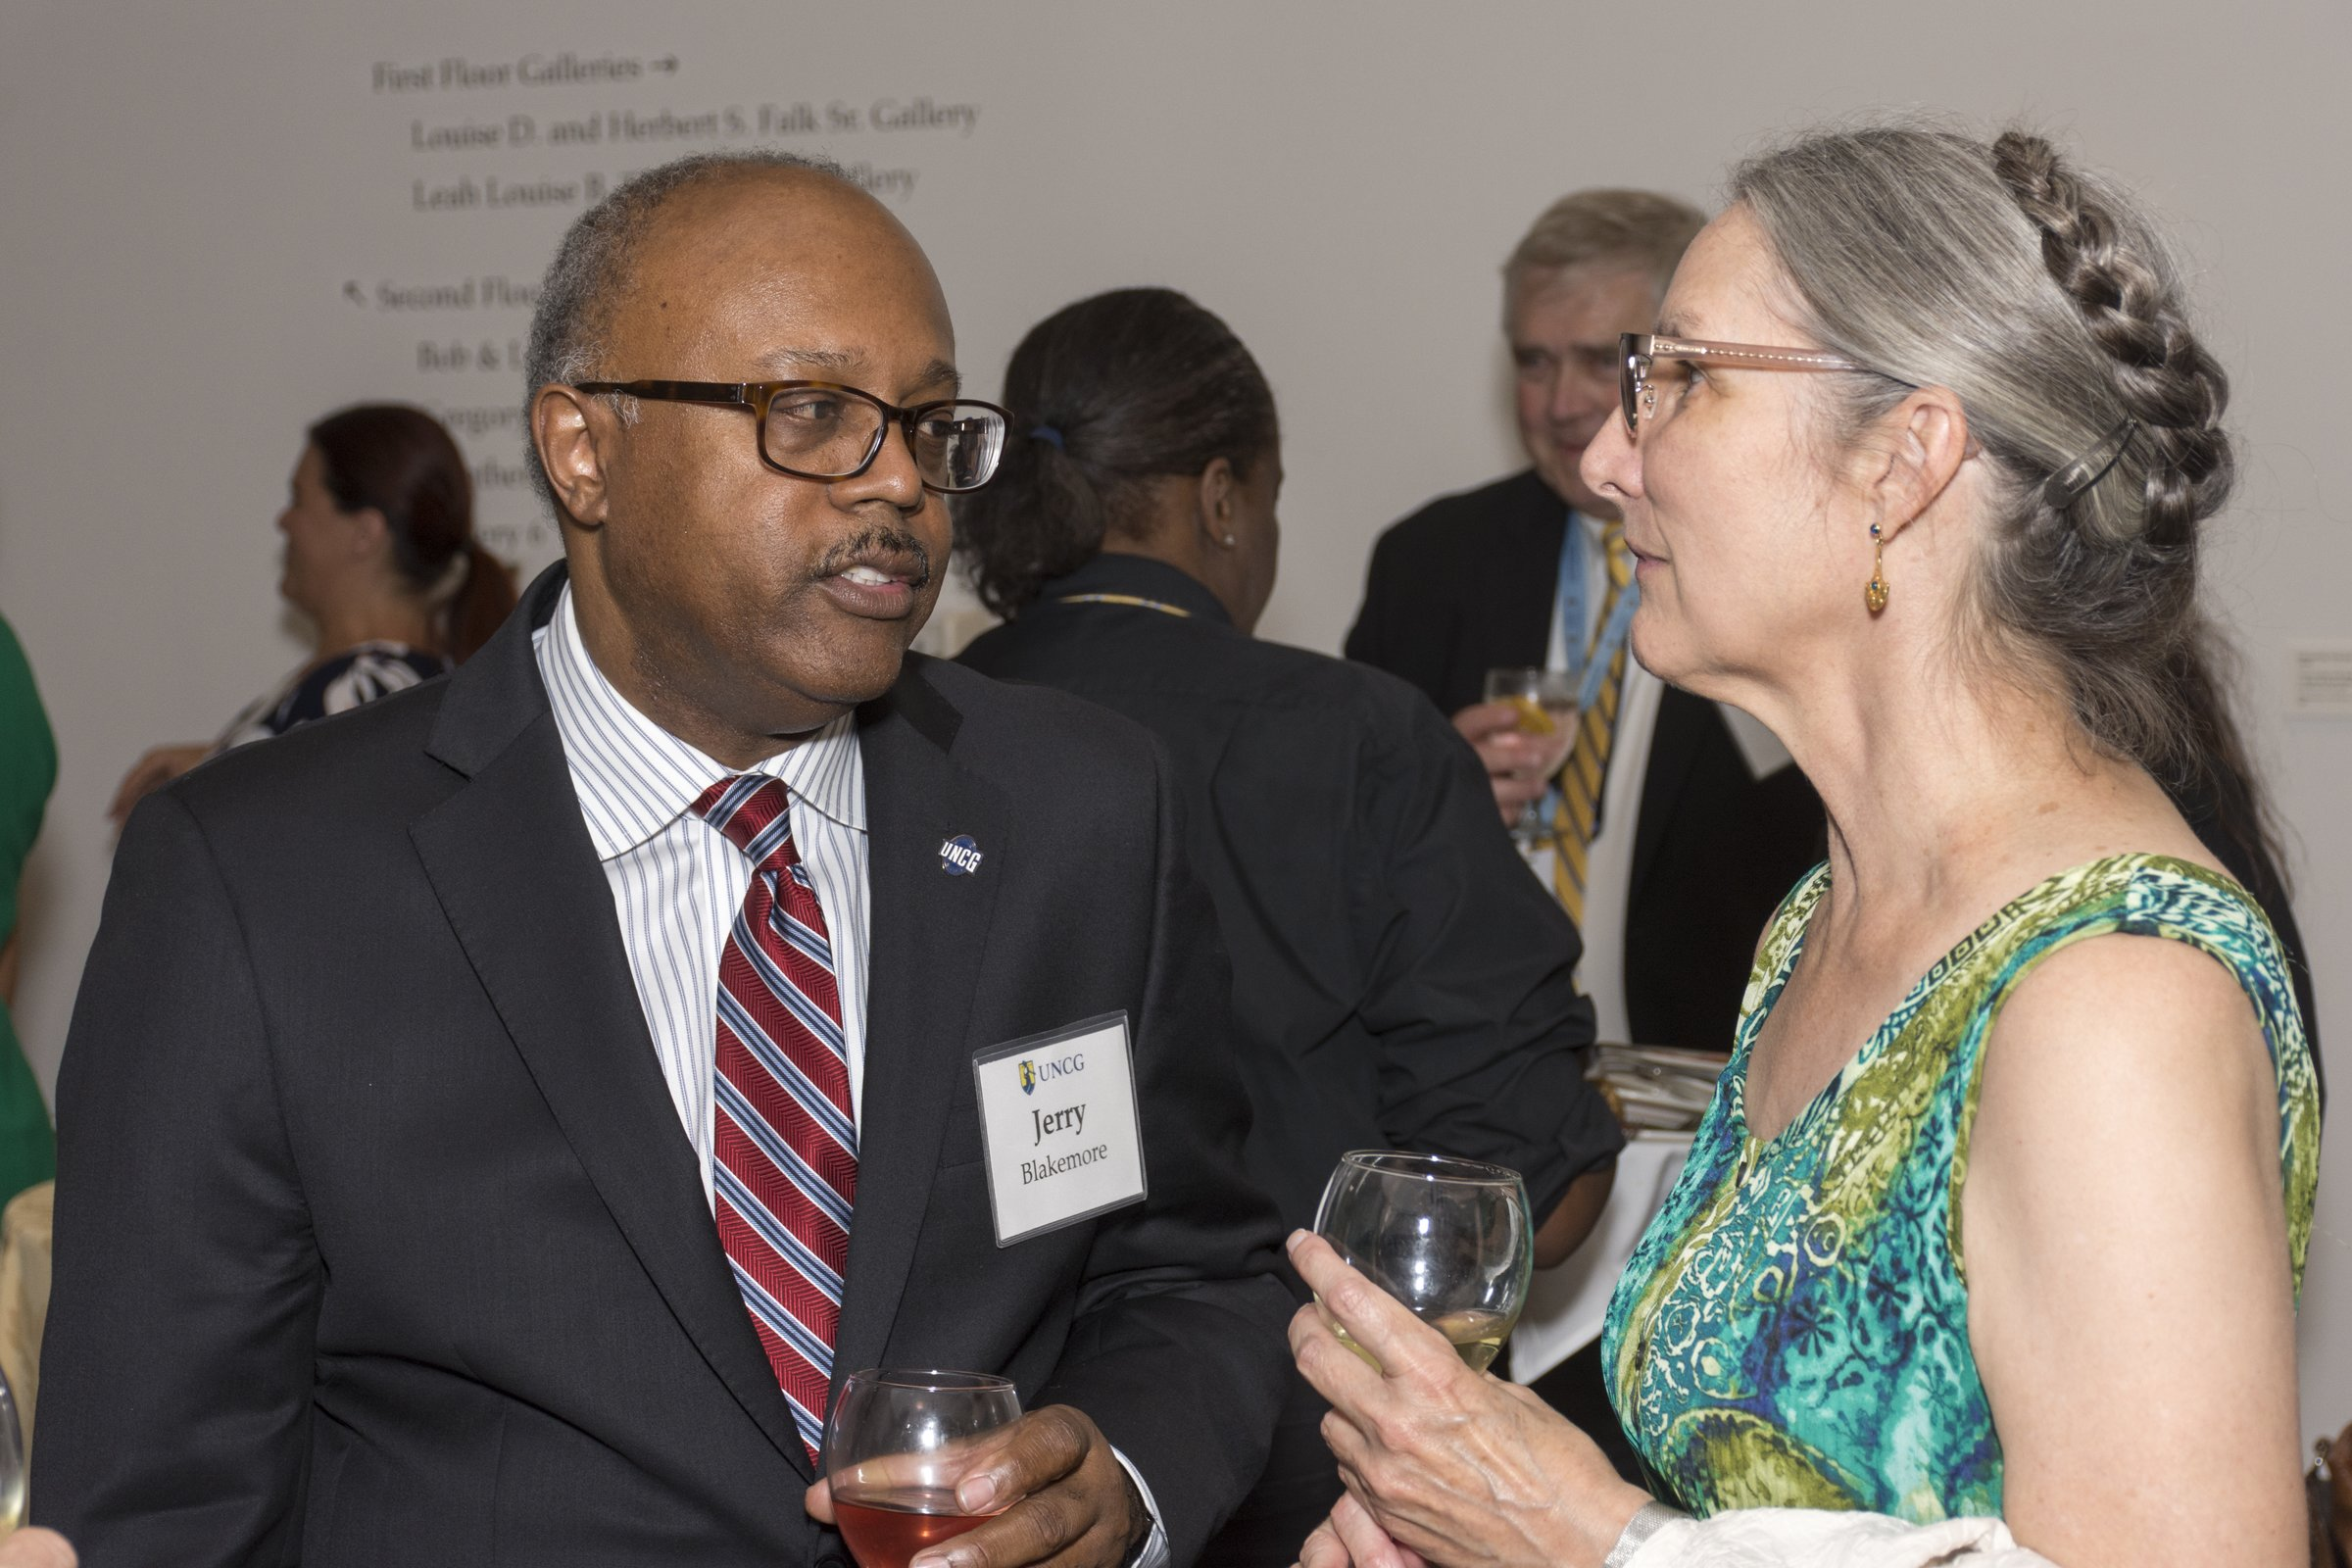 Jerry Blakemore talking with a guest at the reception